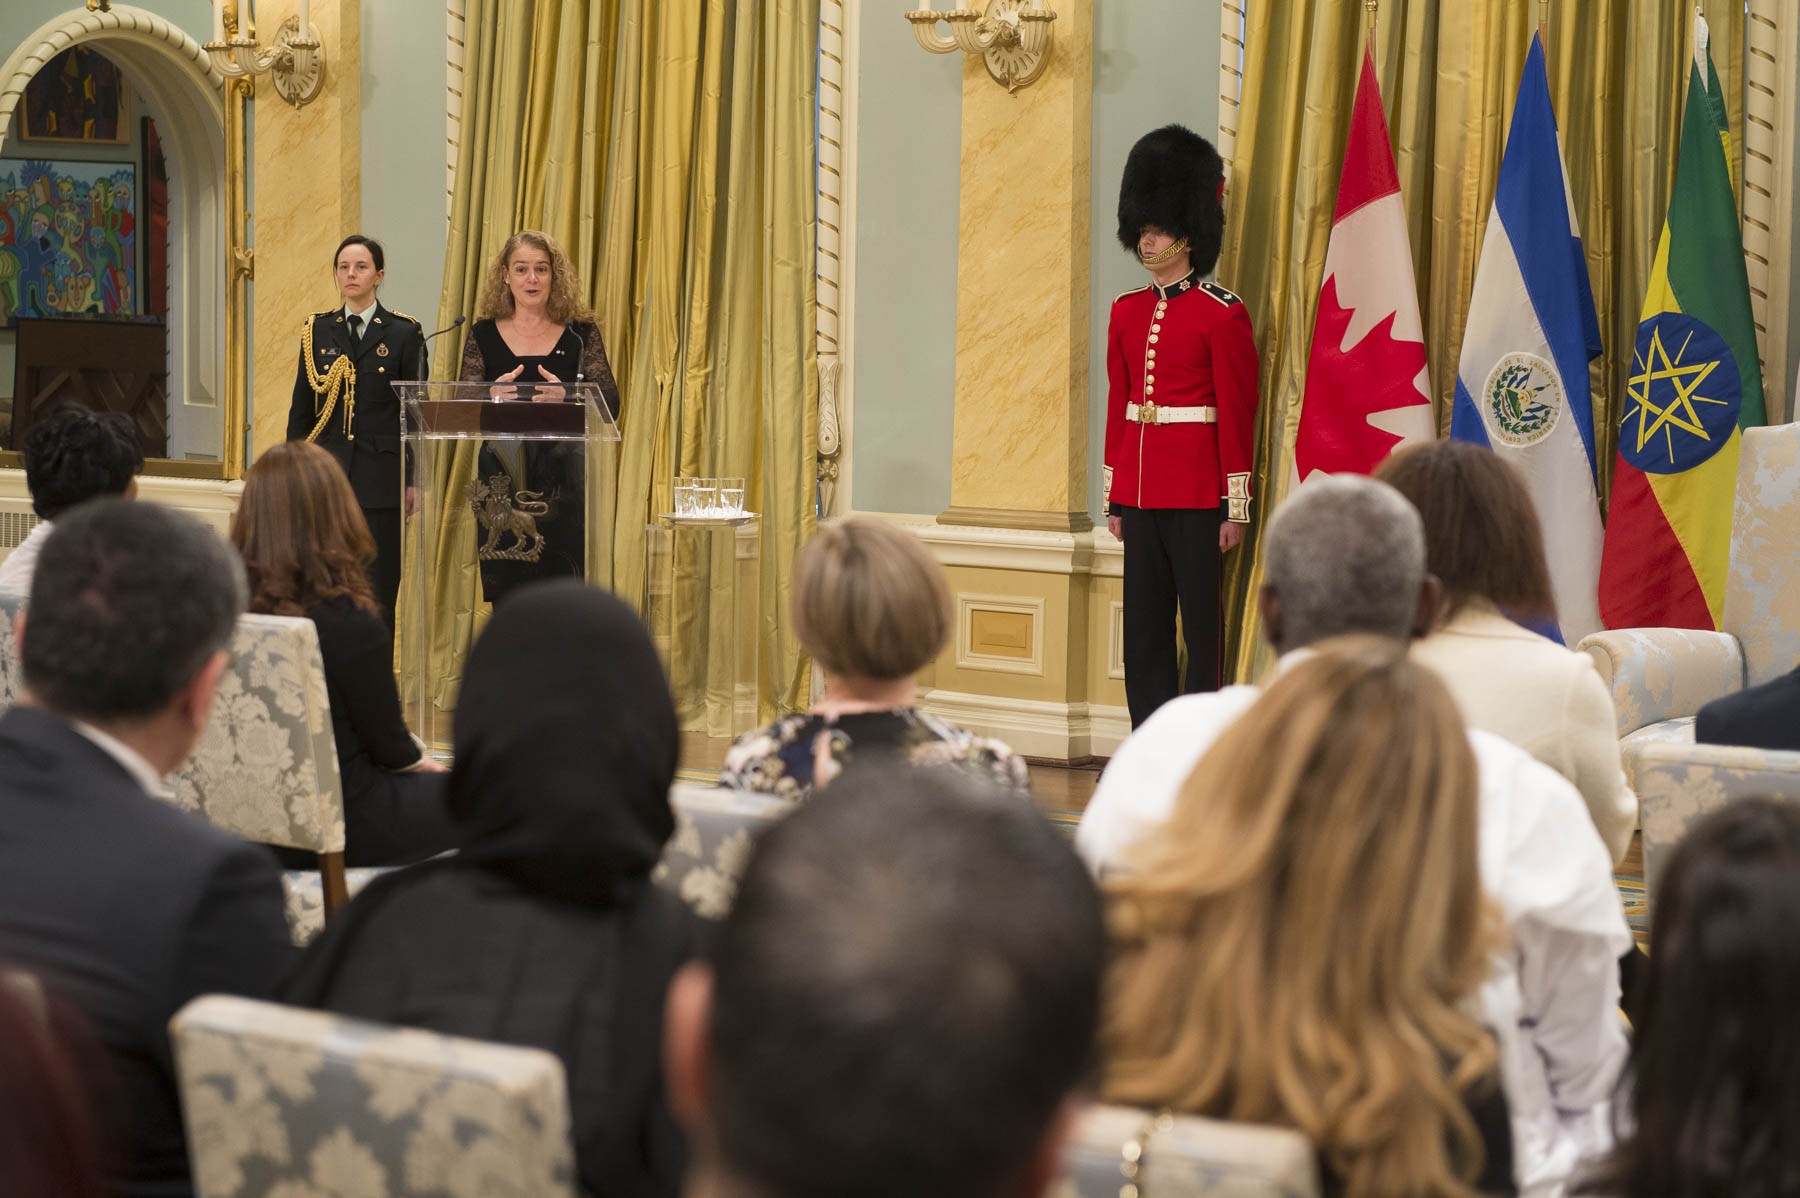 The Governor General delivered a speech welcoming the new heads of mission to Canada.